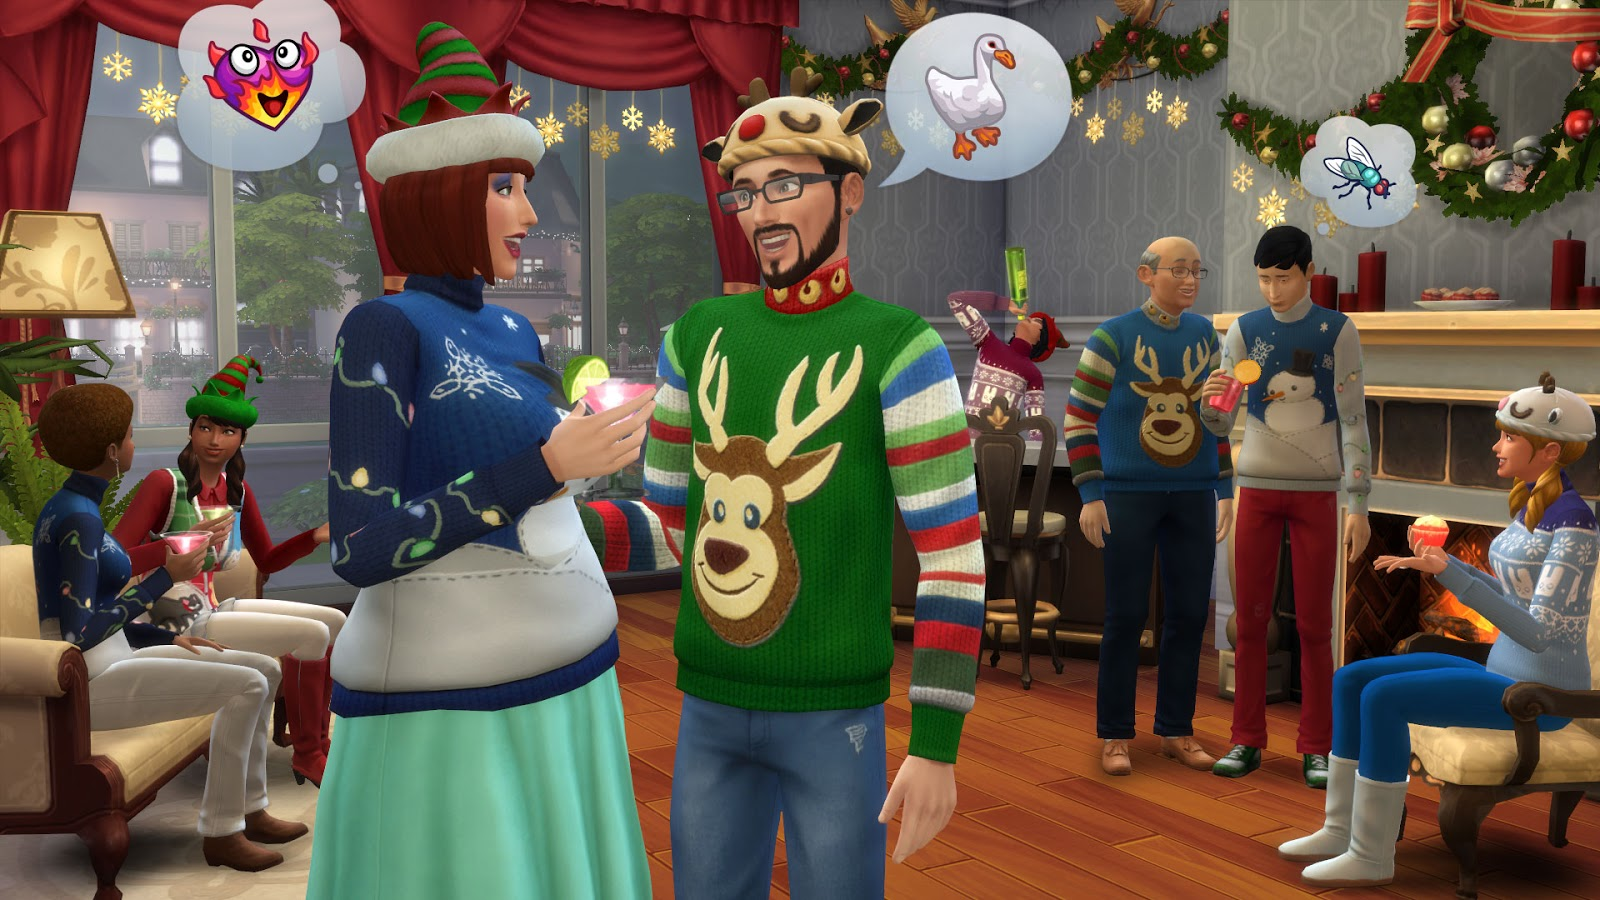 Sims 3 Christmas Tree.Plumbob News The Sims 4 News Celebrate The Holidays With